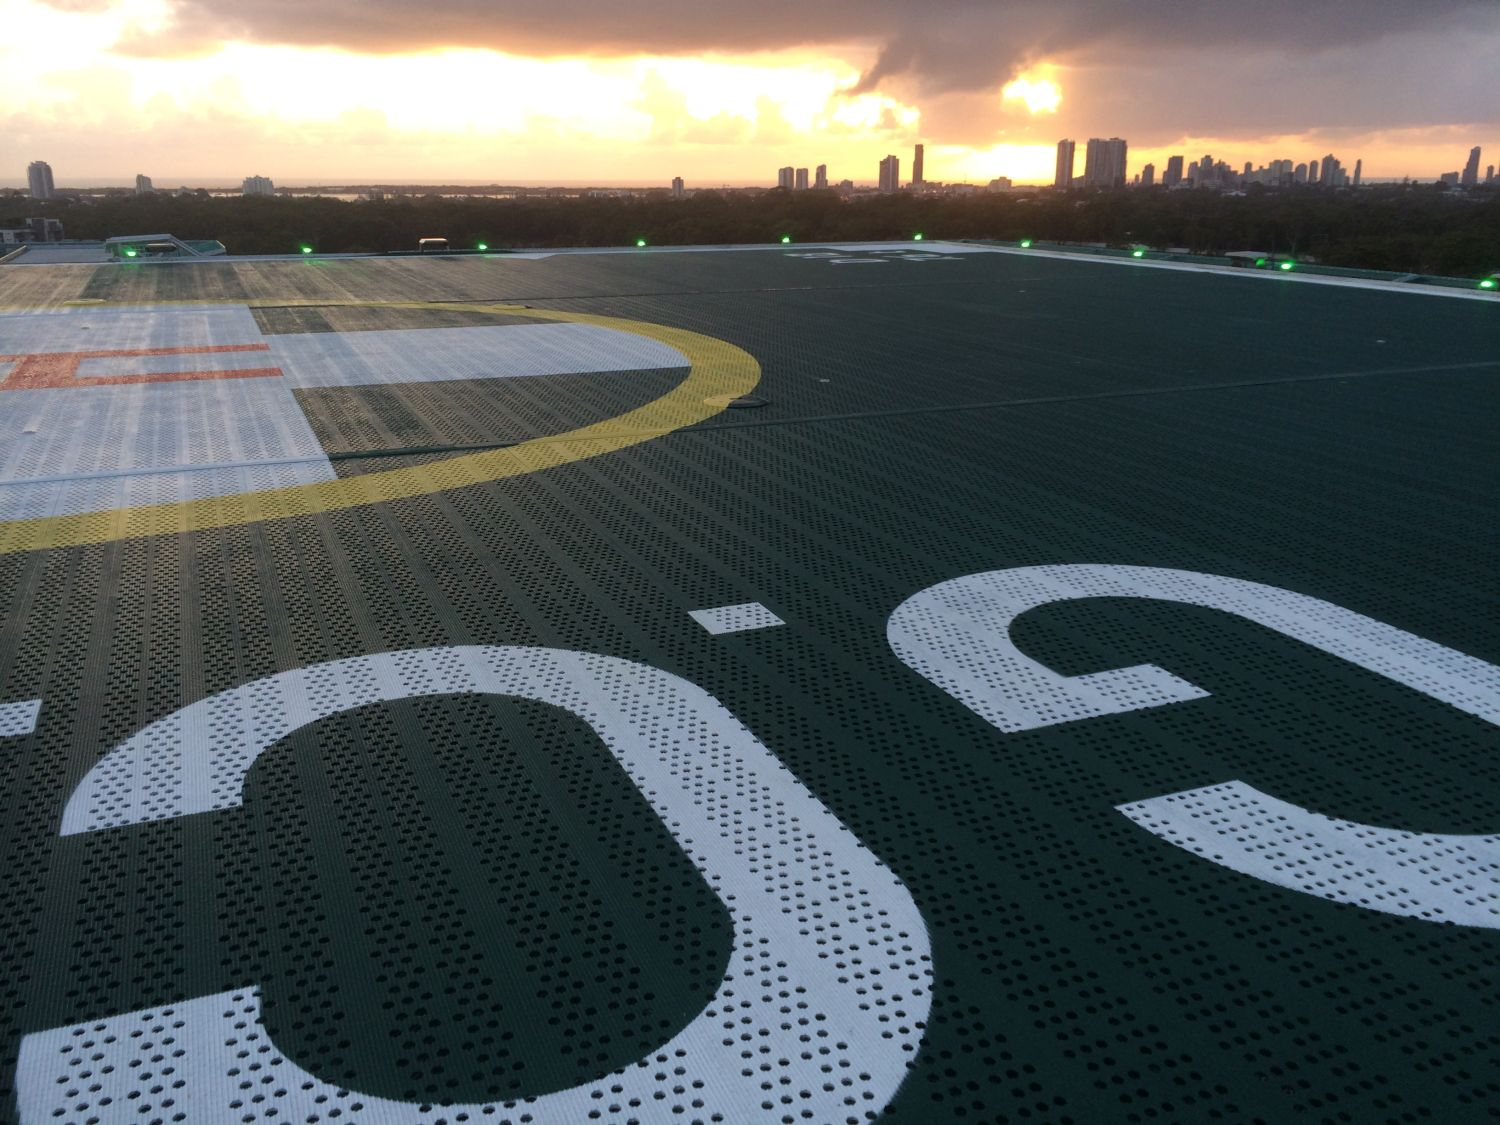 Gold Coast University Hospital Helicopter Landing Pad - FEISTY Study